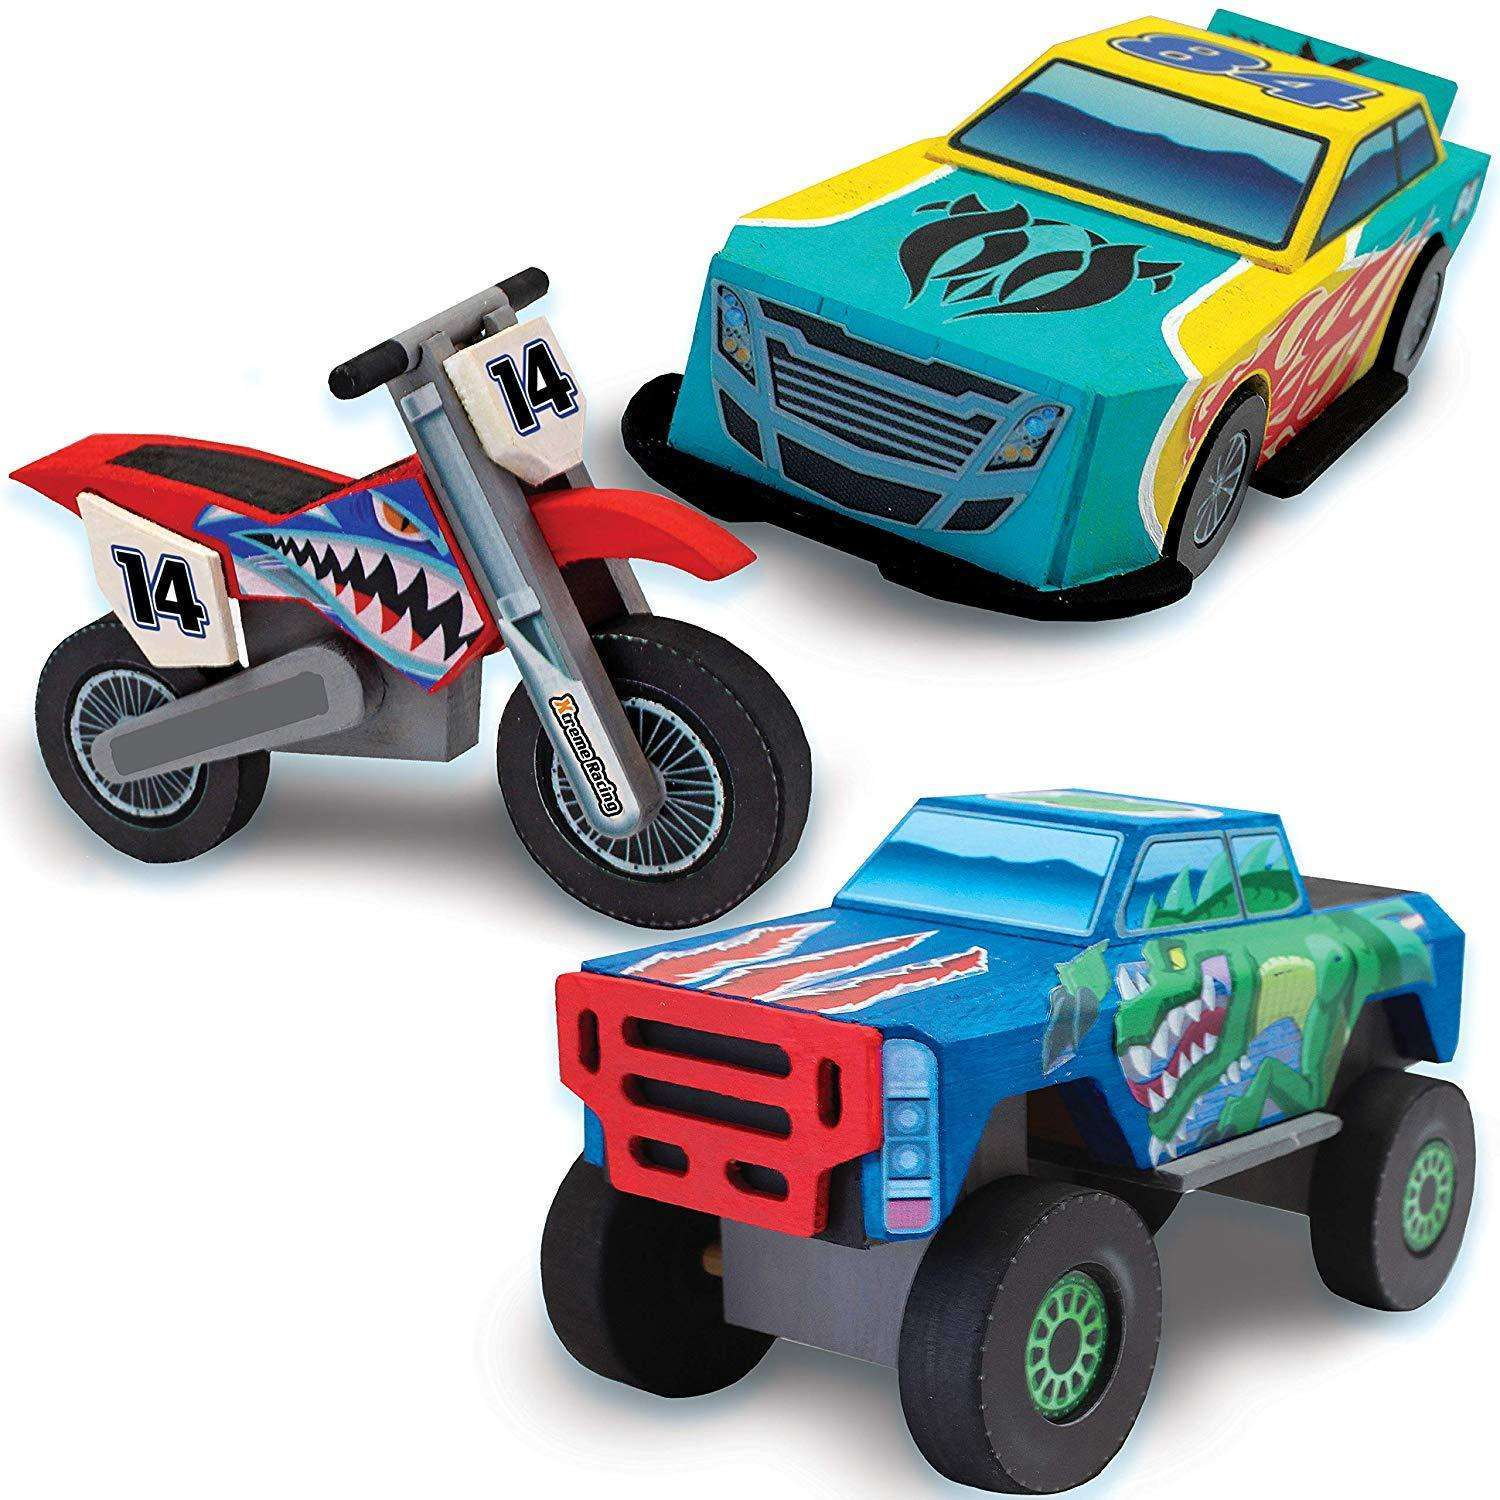 Make Your Own Car >> Klever Kits Kids Craft Kit Build Paint Your Own Wooden Race Car Art Craft Kit Diy Toy Make Your Own Car Truck Toy Construct And Paint Craft Kit